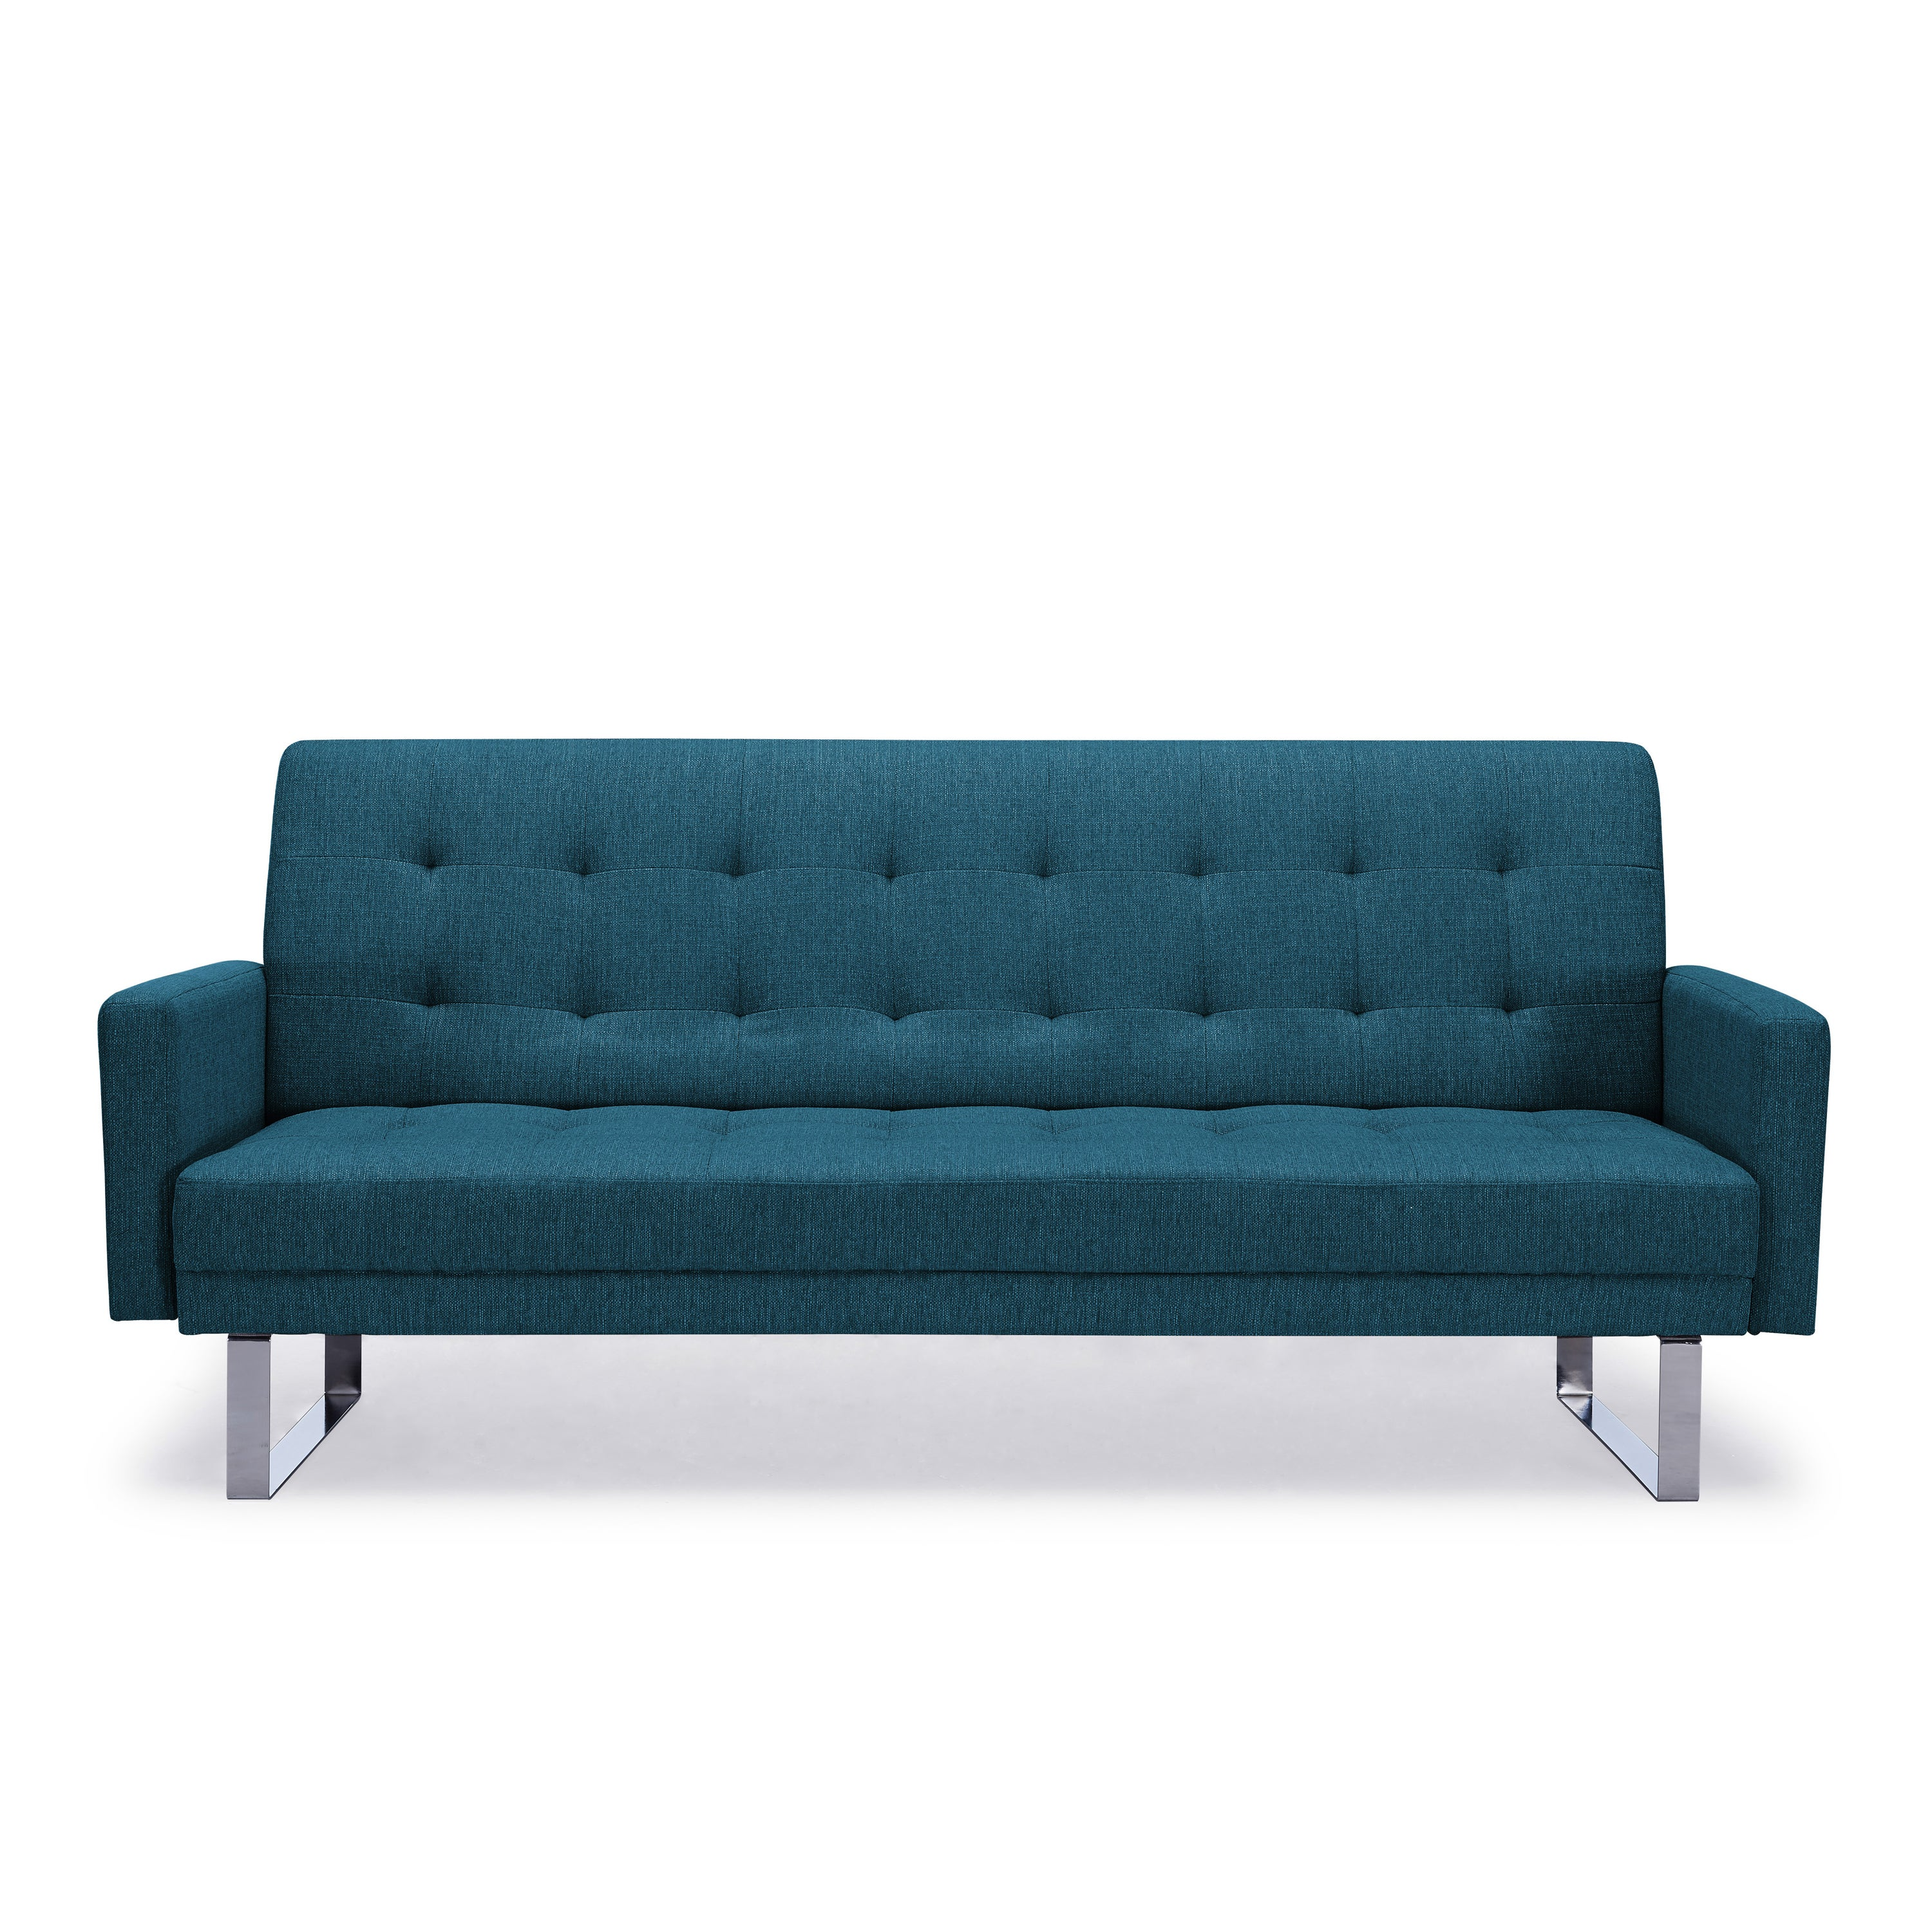 Handy Living Springfield Caribbean Blue Linen Click Clack Futon Sofa Bed On Free Shipping Today 17520743